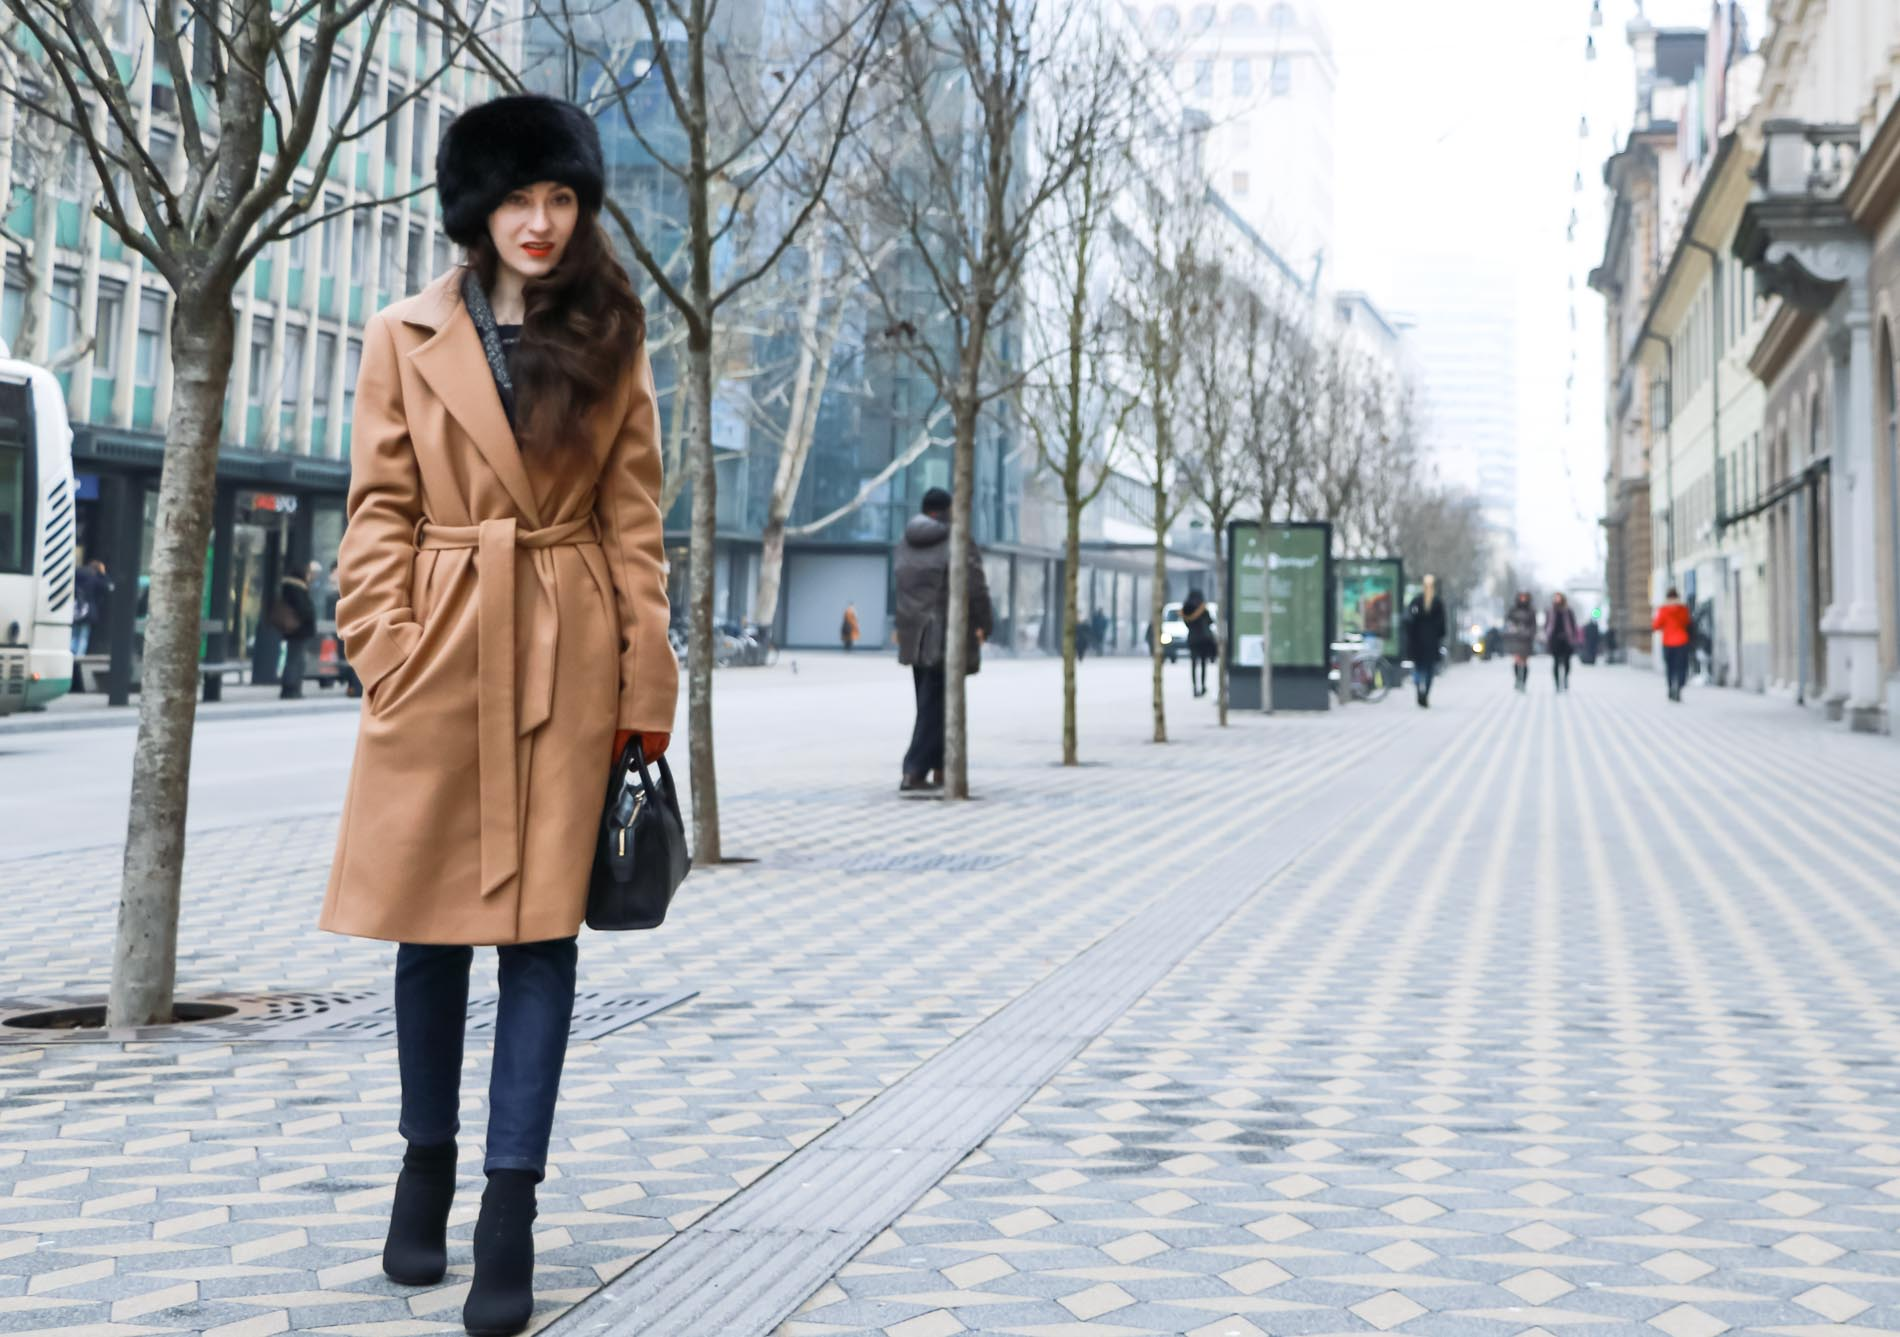 Veronika Lipar of Brunette from Wall Street wearing wrap Escada camel coat, A.P.C. dark tapered denim jeans, black sock boots from Elena Iachi, black fur hat and small black top handle bag while walking down the street